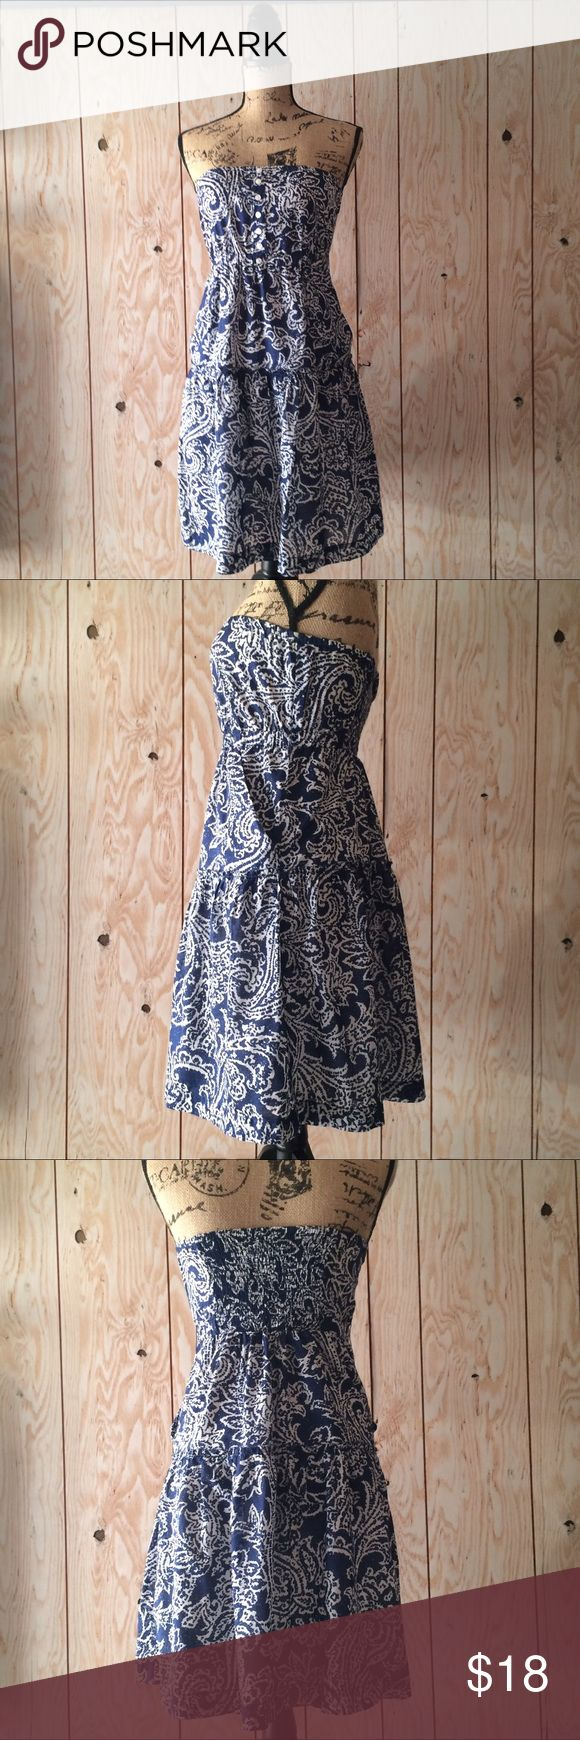 American Eagle Outfitters strapless dress! Beautiful details. Front pockets! Lined. 100% cotton. Size 4. Excellent condition. Bundle discount available. Fast shipping. ⚡️⚡️ American Eagle Outfitters Dresses Strapless